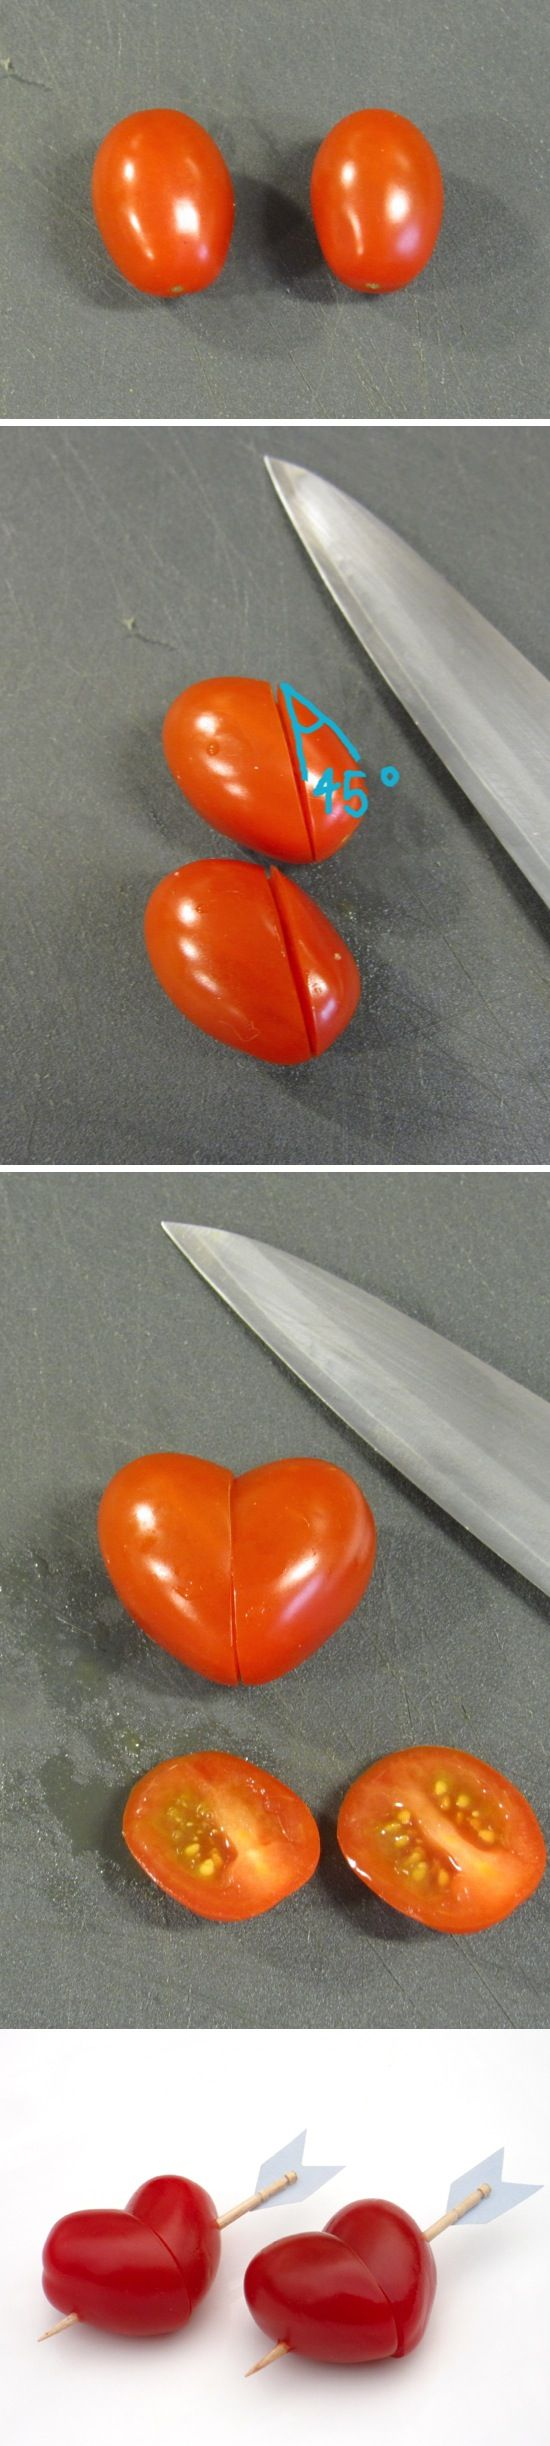 Cherry Tomato Hearts. Great garnish for salad or veggie platter.